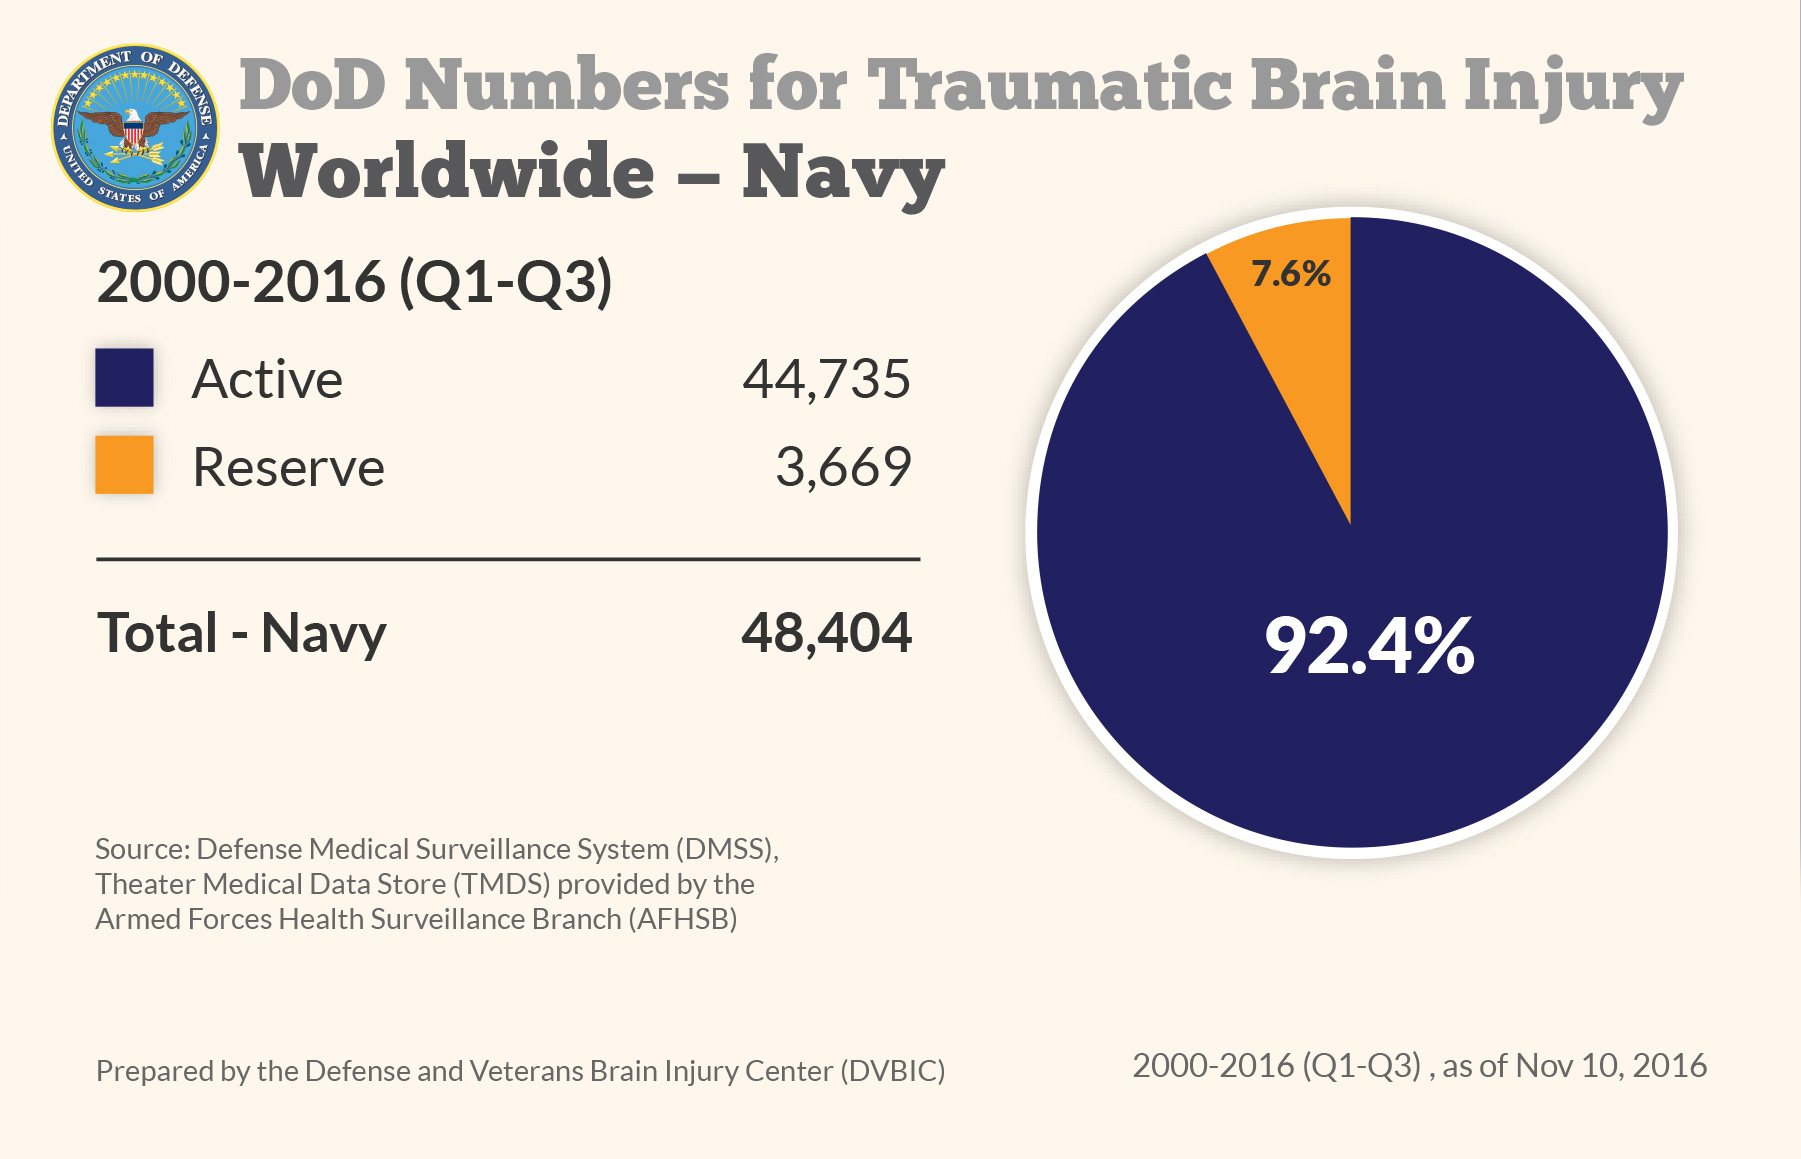 DoD Numbers for Traumatic Brain Injury Worldwide - Navy